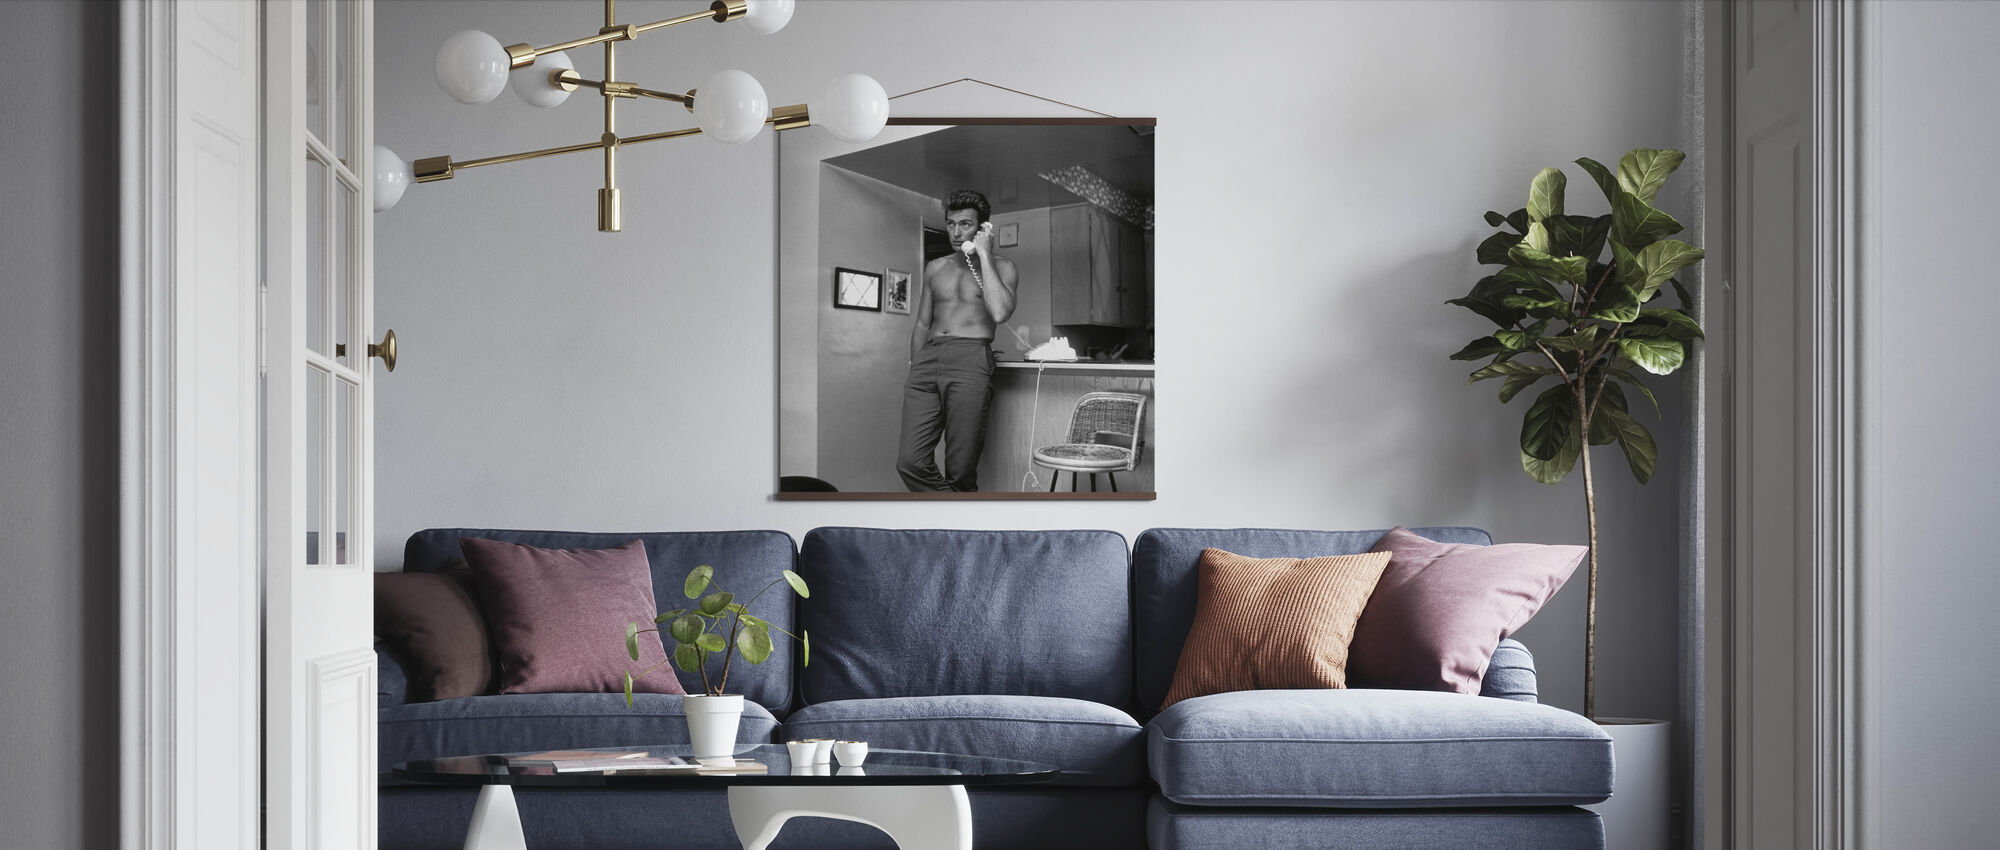 Clint Eastwood - Poster - Living Room